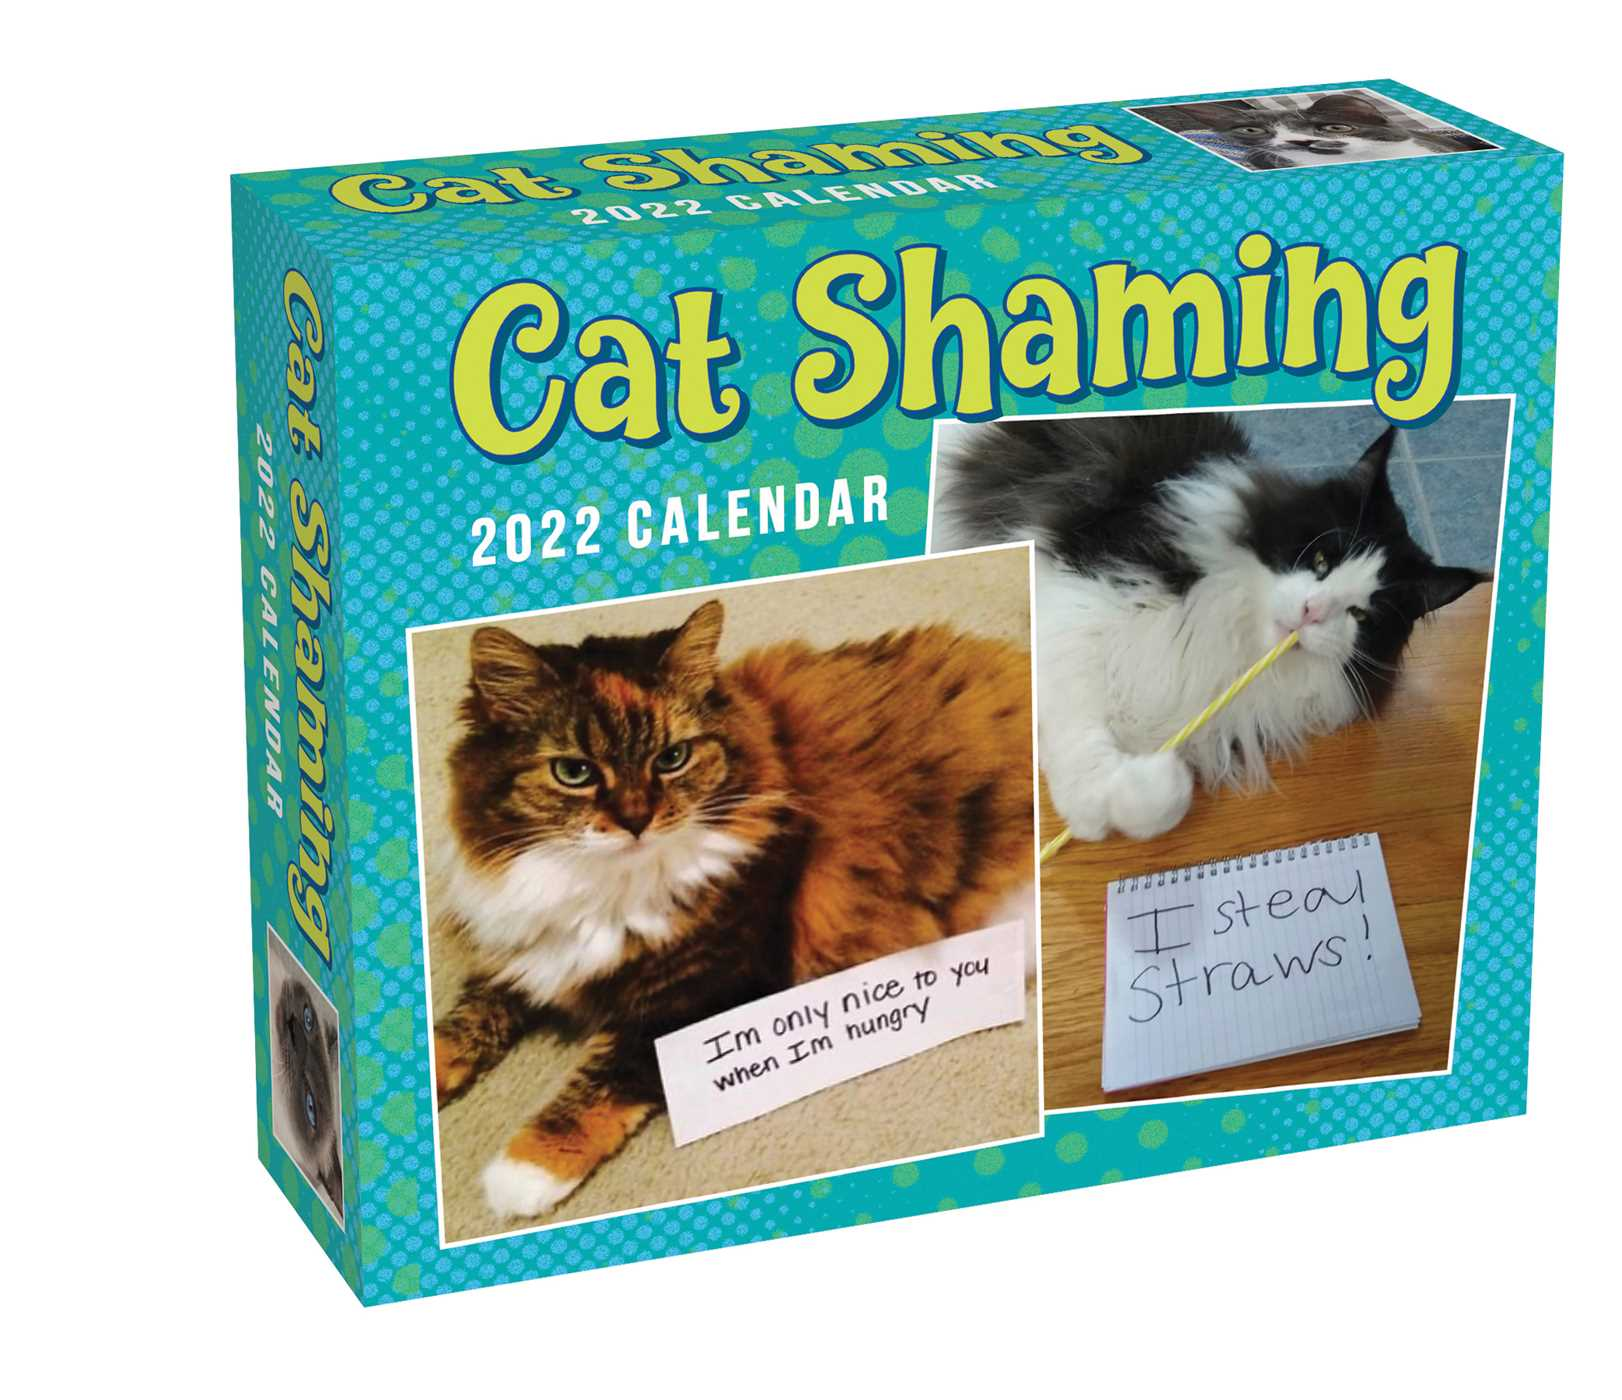 Grumpy Cat Calendar 2022.Cat Shaming 2022 Day To Day Calendar Book Summary Video Official Publisher Page Simon Schuster